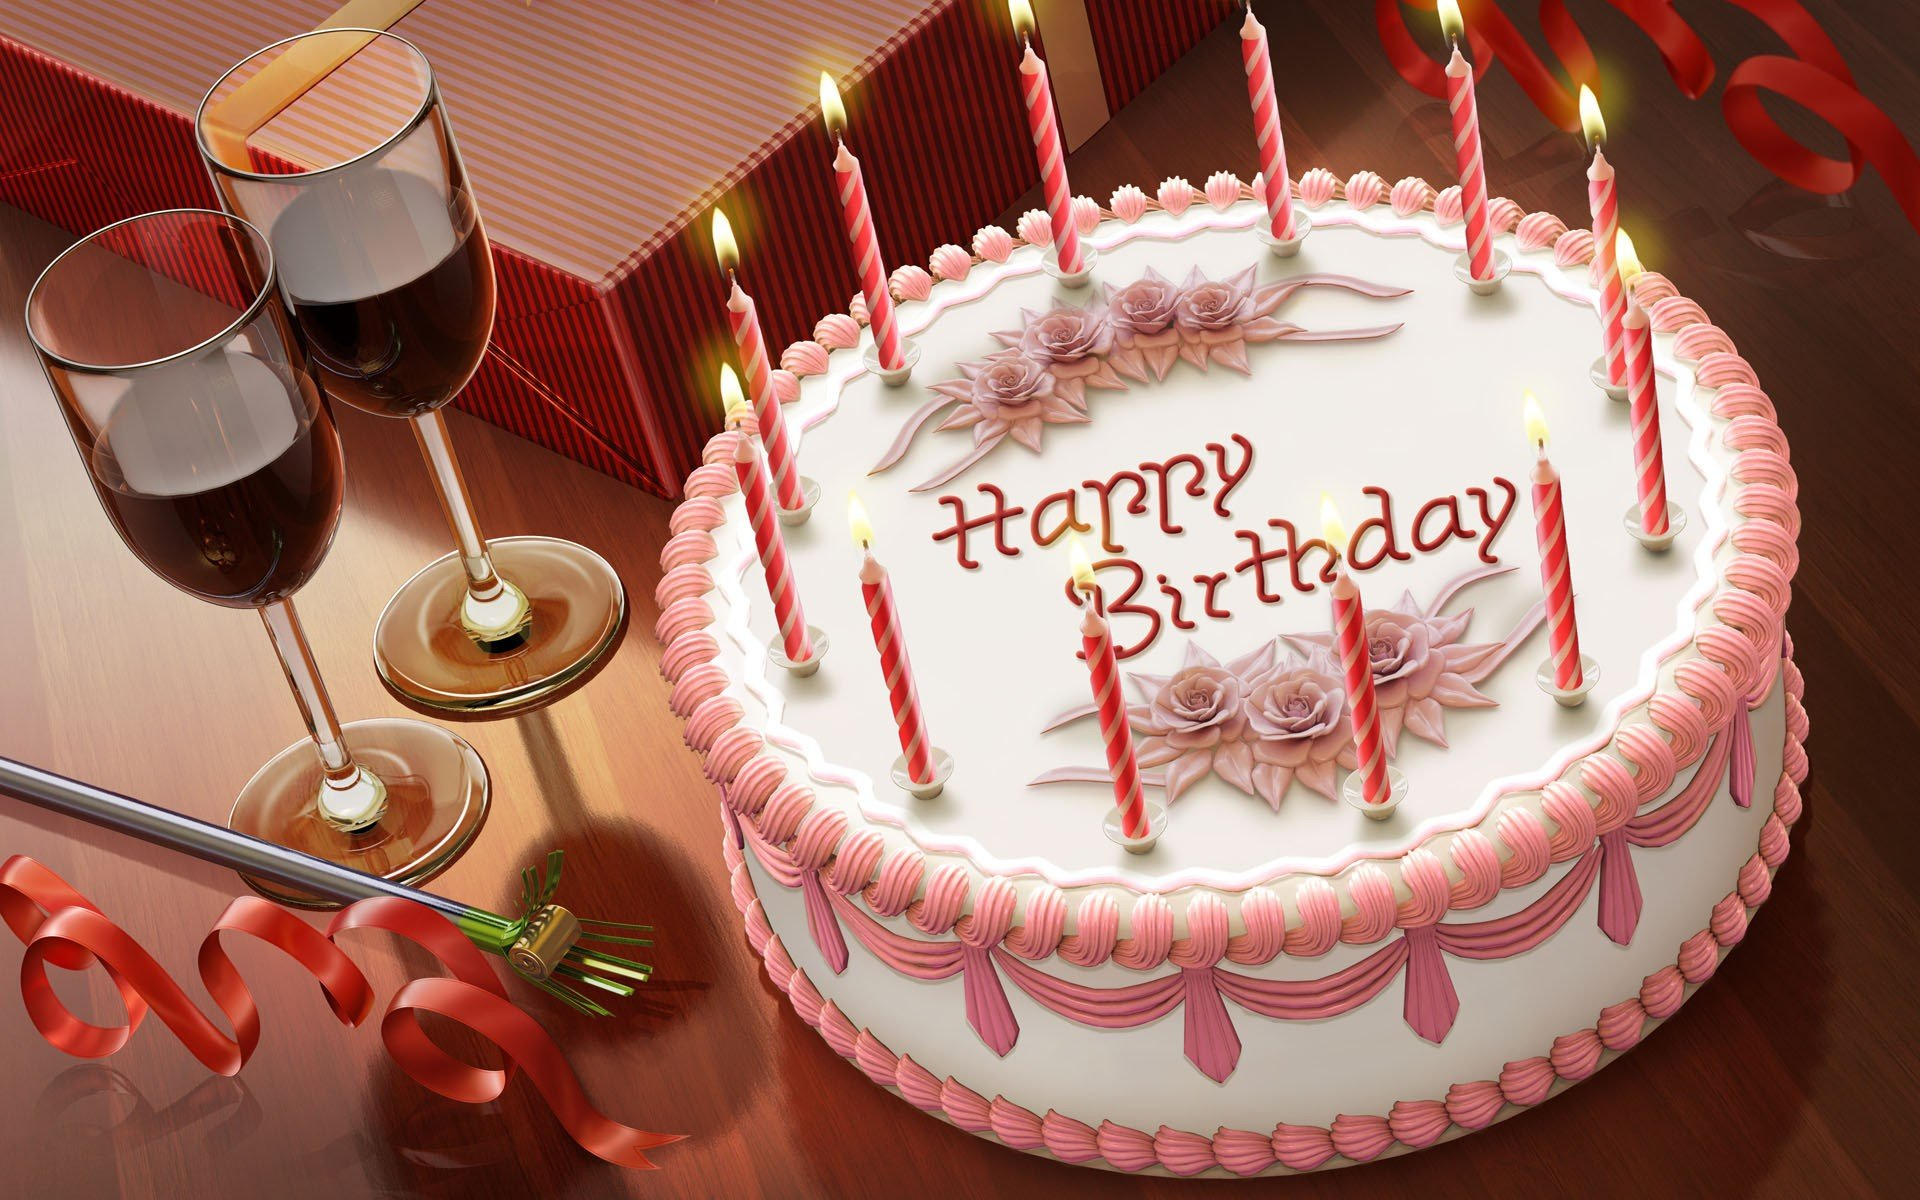 happy birthday cake image 1920x1200